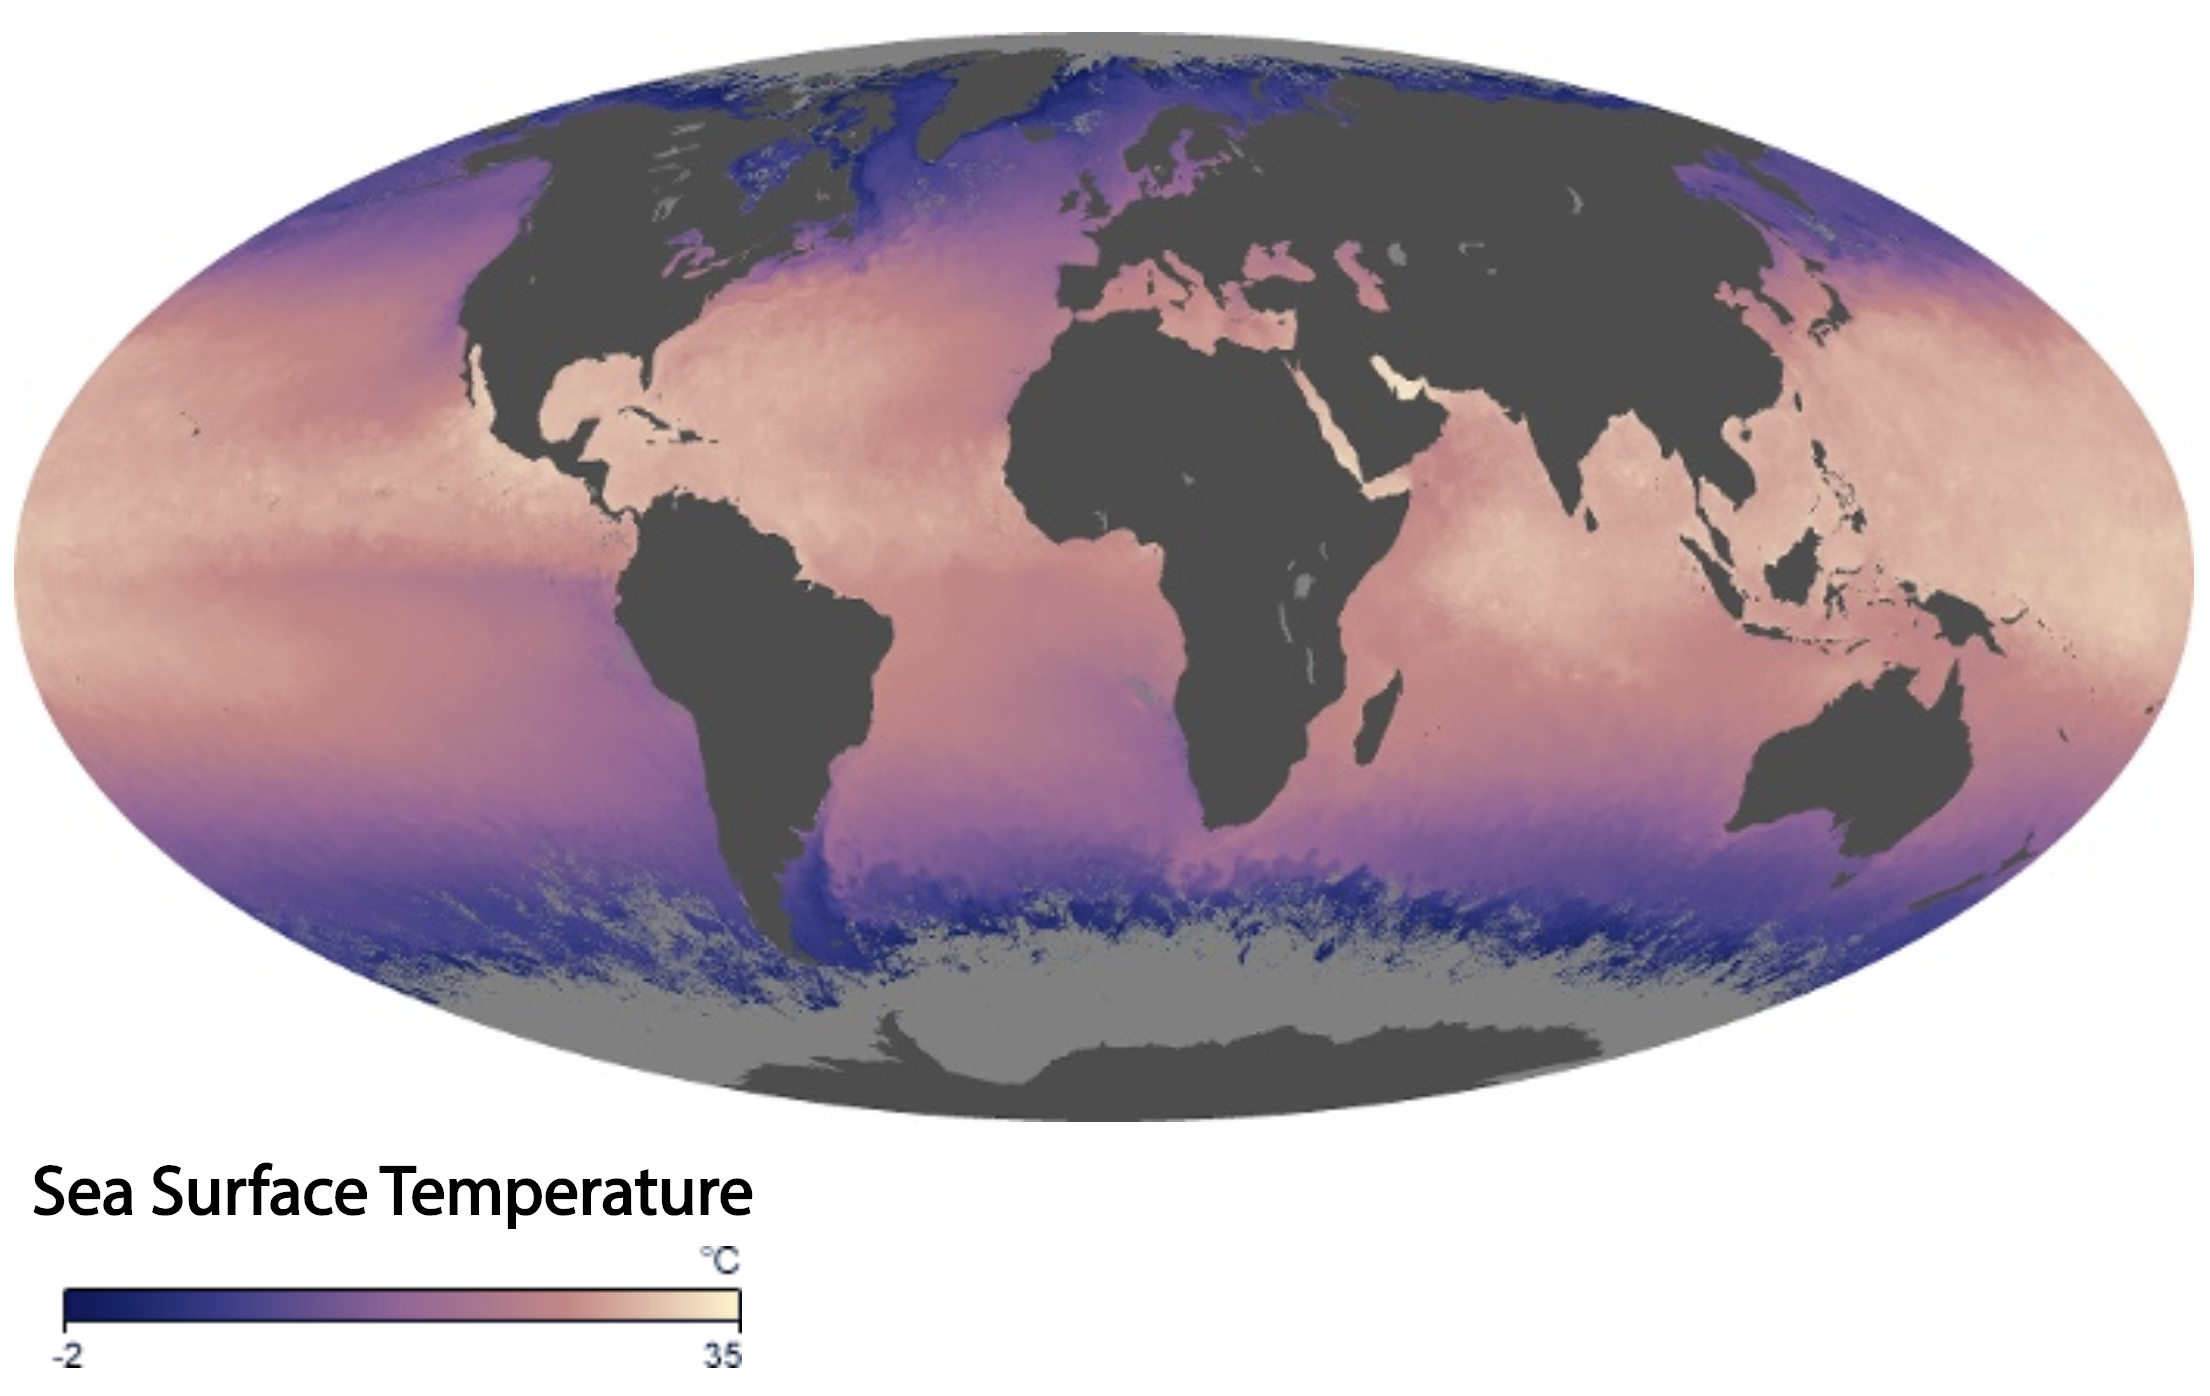 Map showing global sea surface temperature during September 2019.